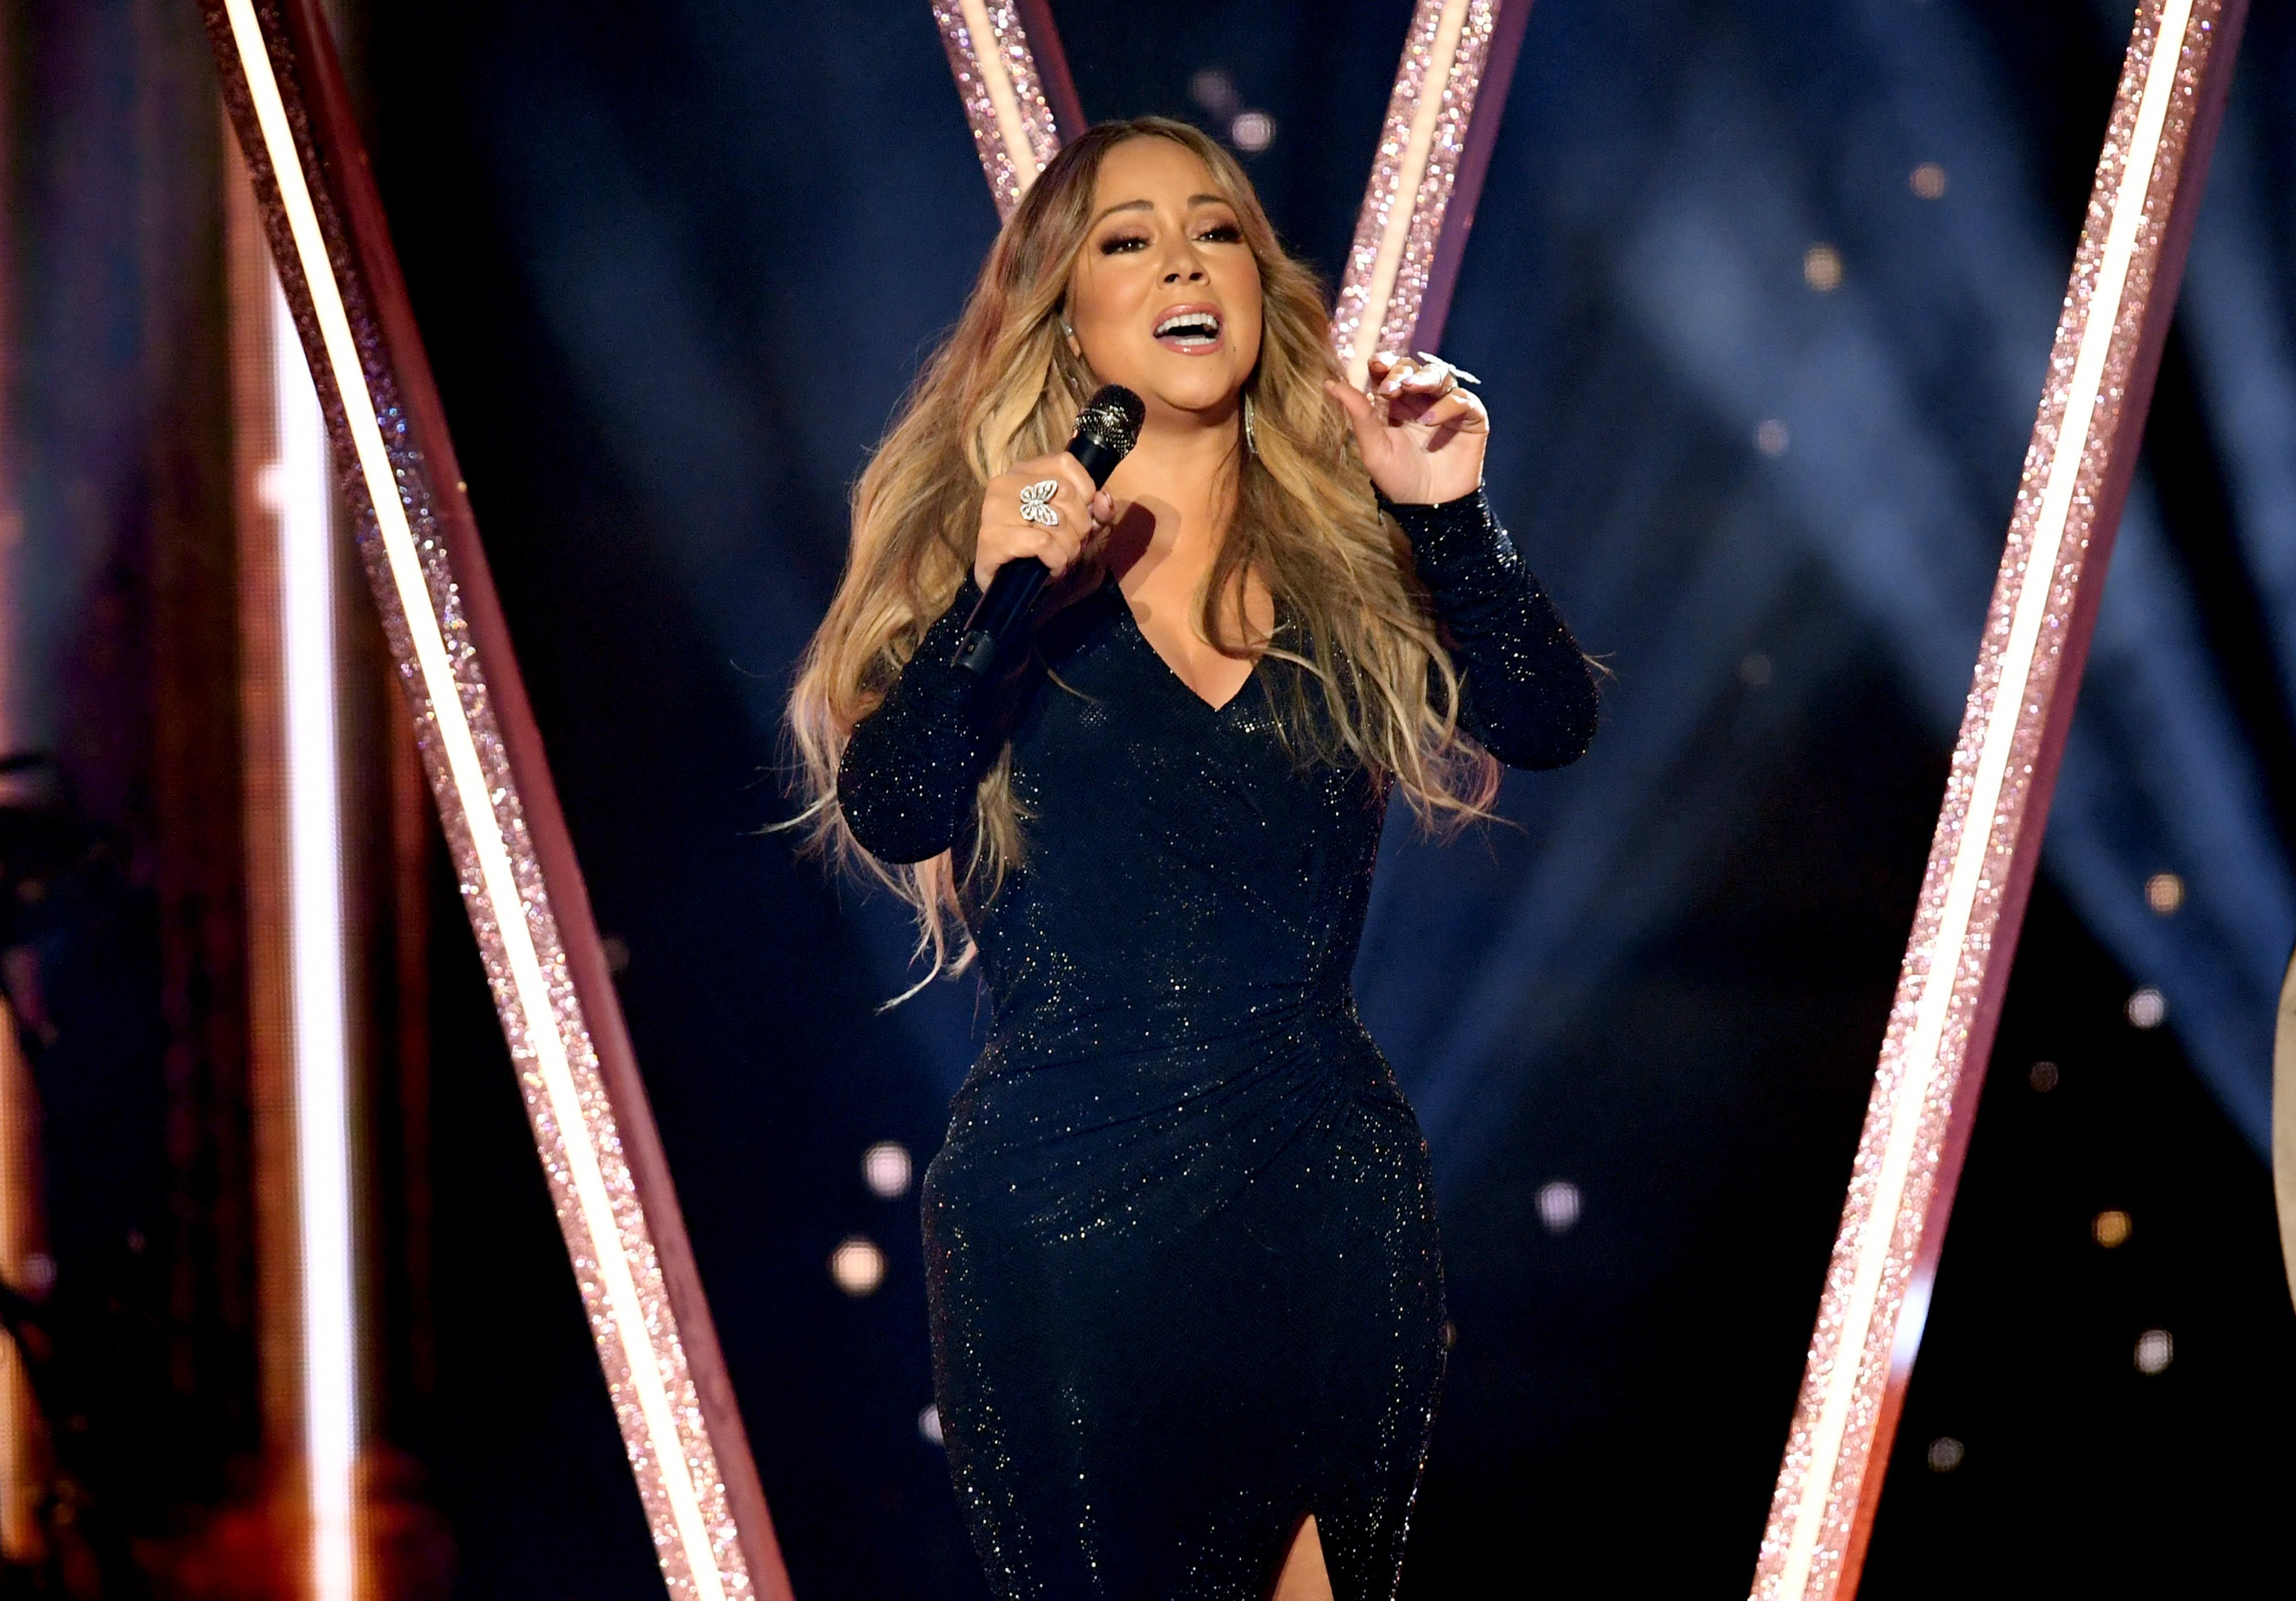 Mariah Carey performs onstage during the 2019 Billboard Music Awards at MGM Grand Garden Arena on May 01, 2019, in Las Vegas, Nevada. | Source: Getty Images.